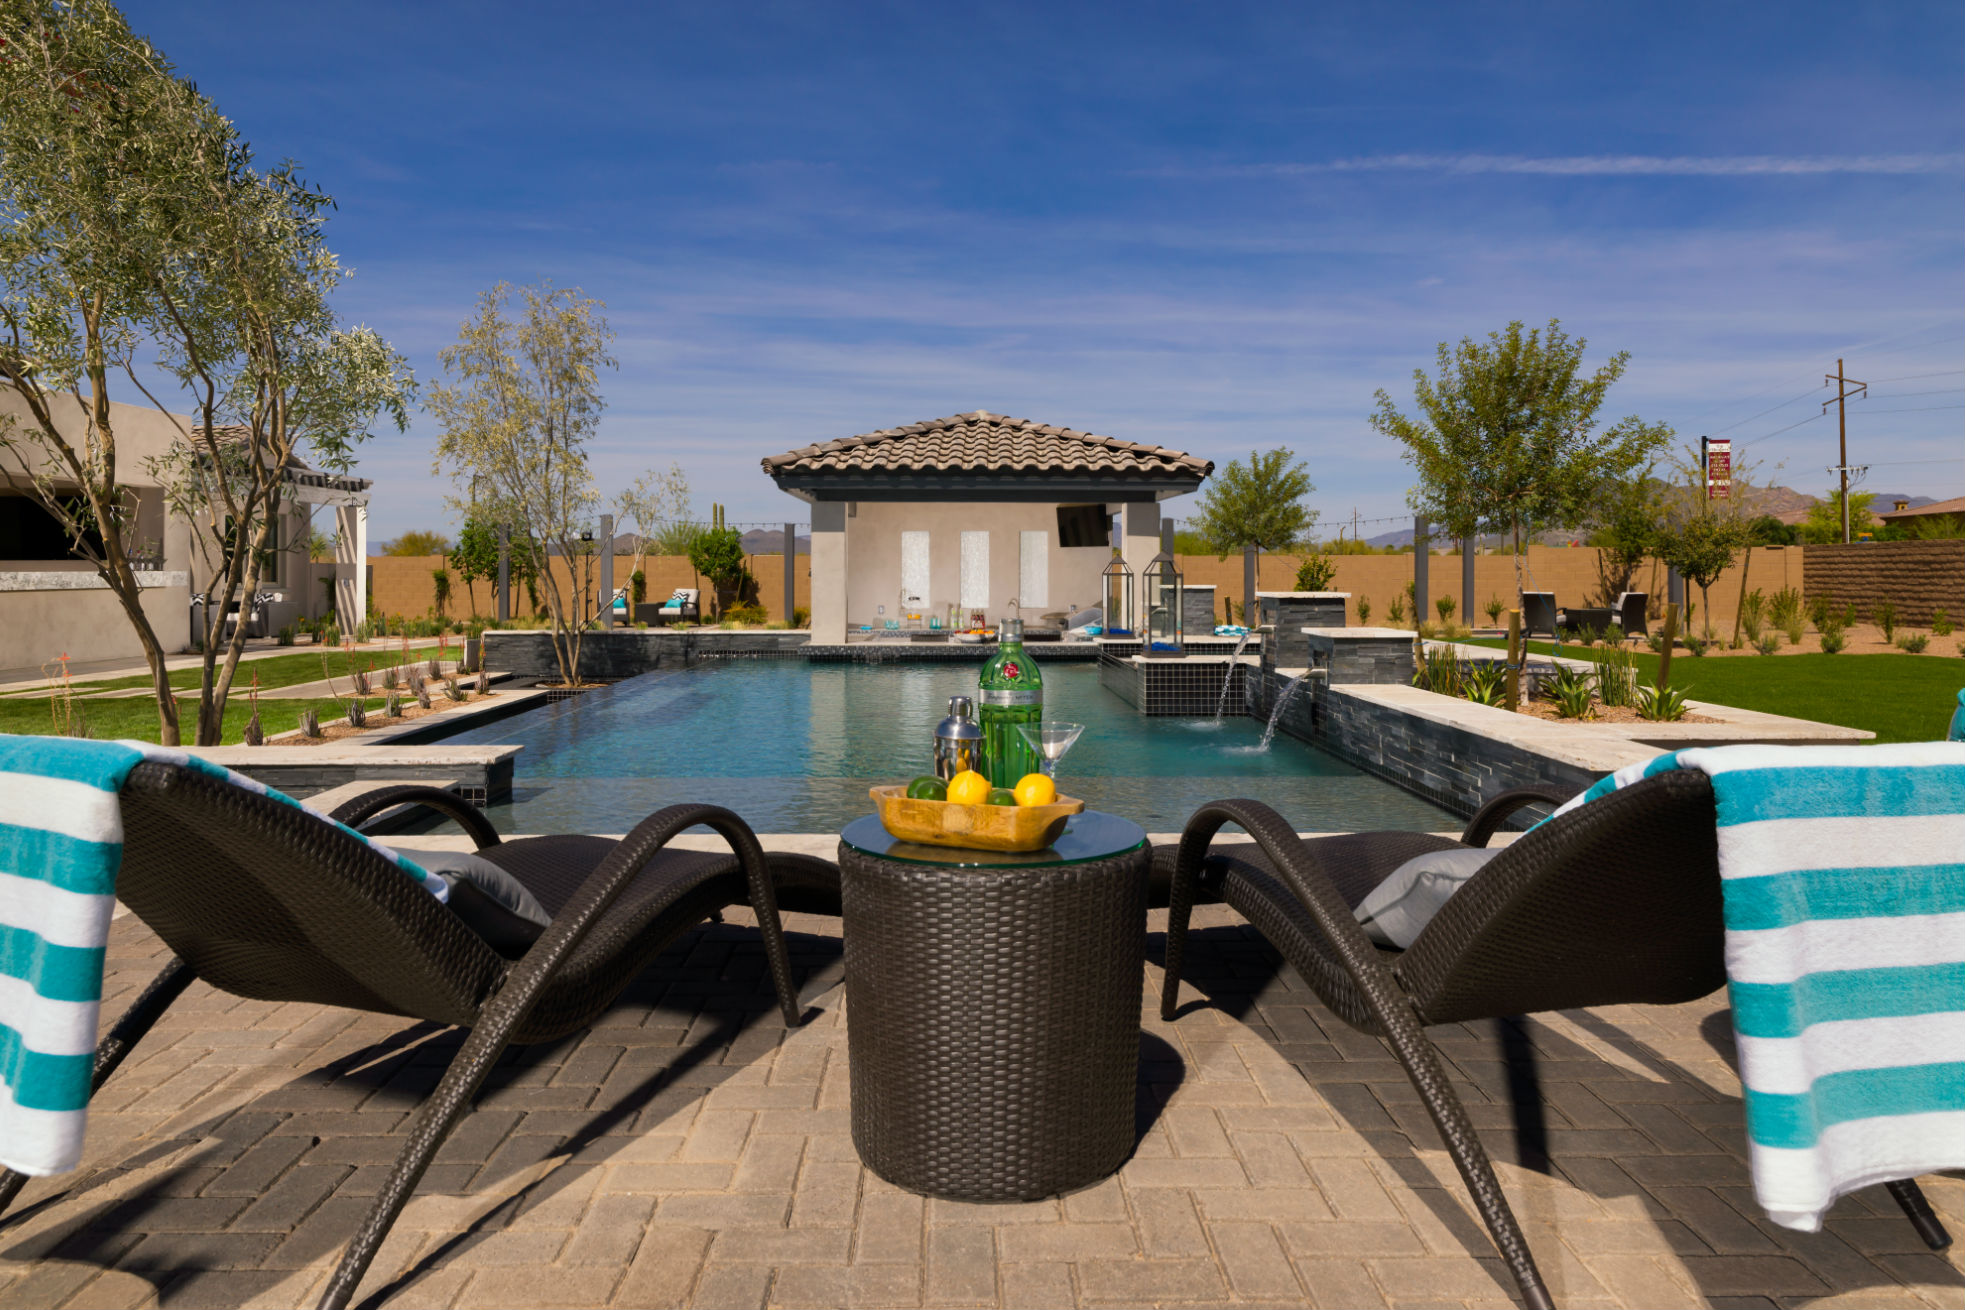 landscape firm turned pool builder designs backyard plan for toll